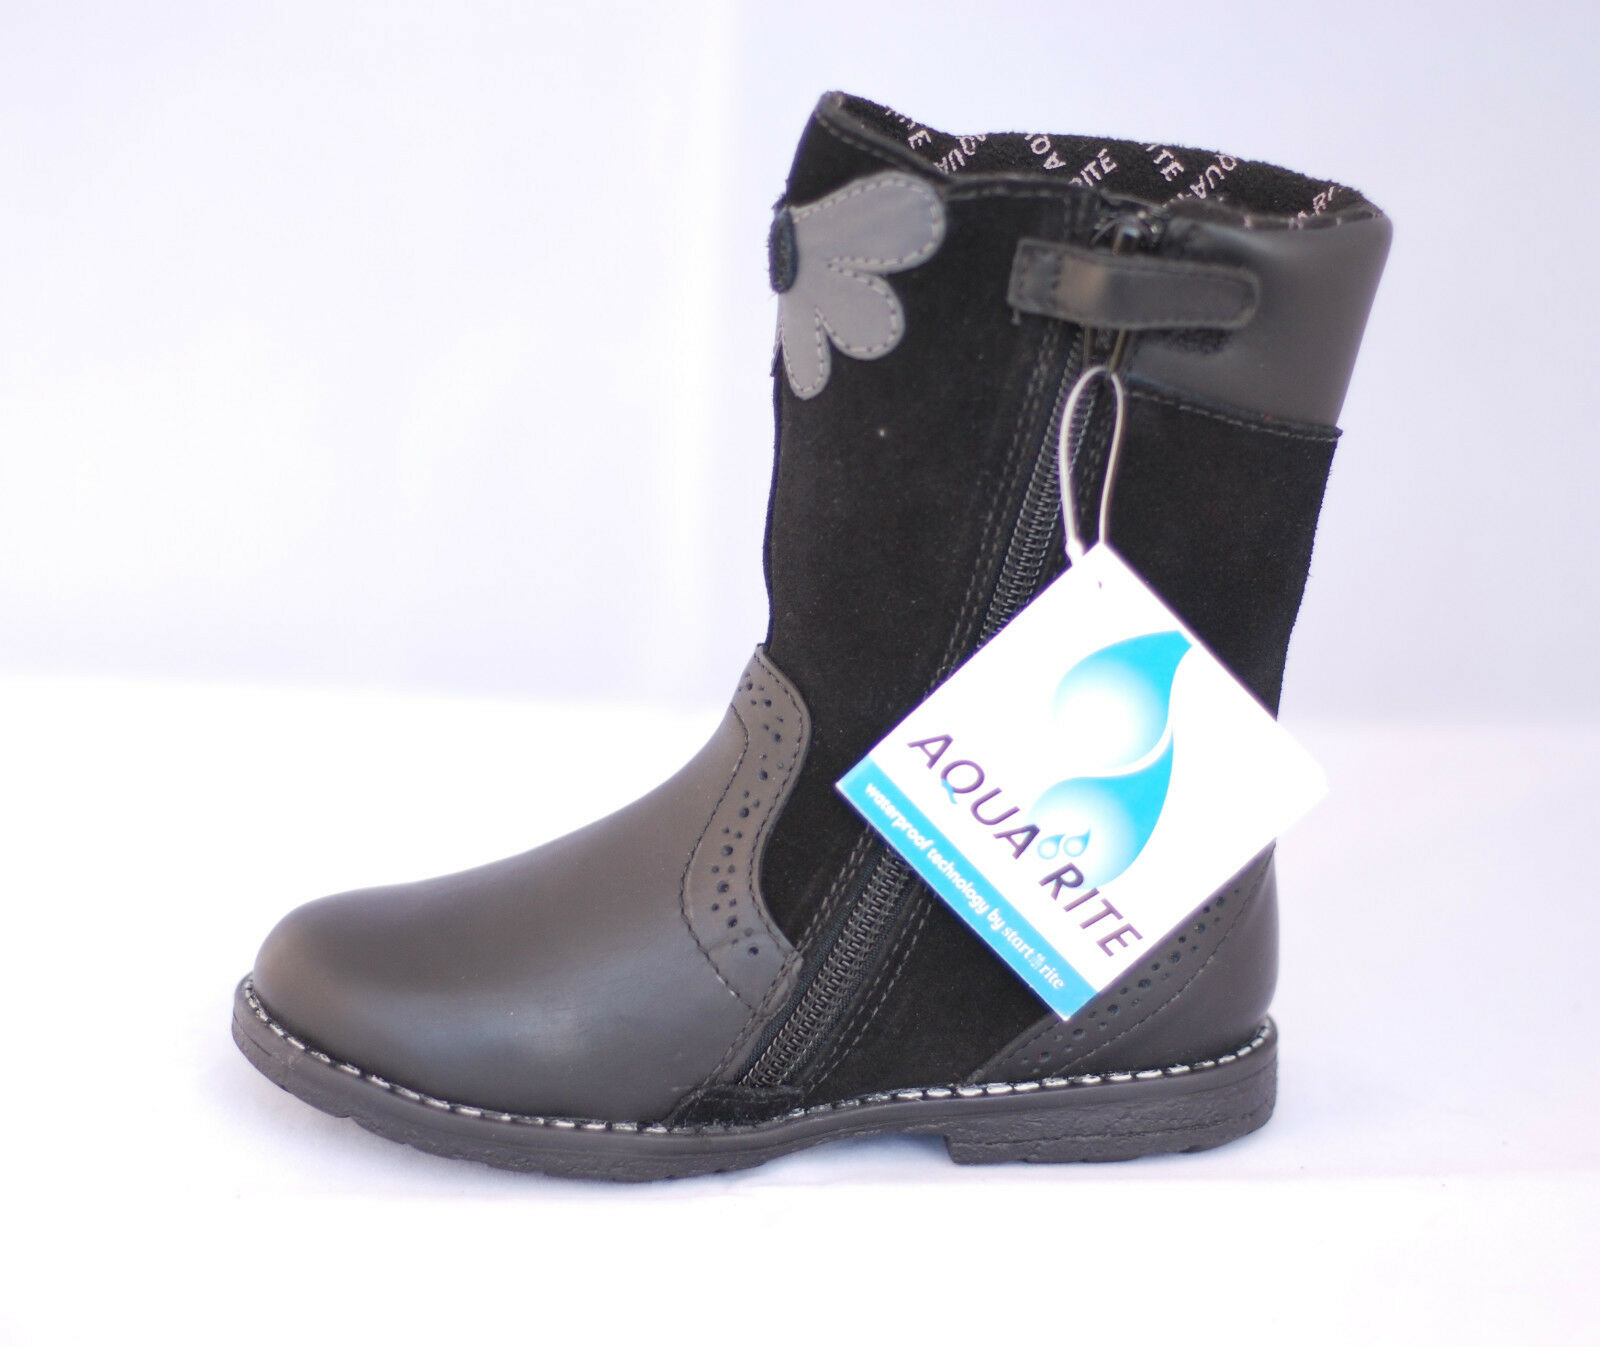 Start-rite Aqua Bow Girls/' Boots Brown 60/% OFF RRP